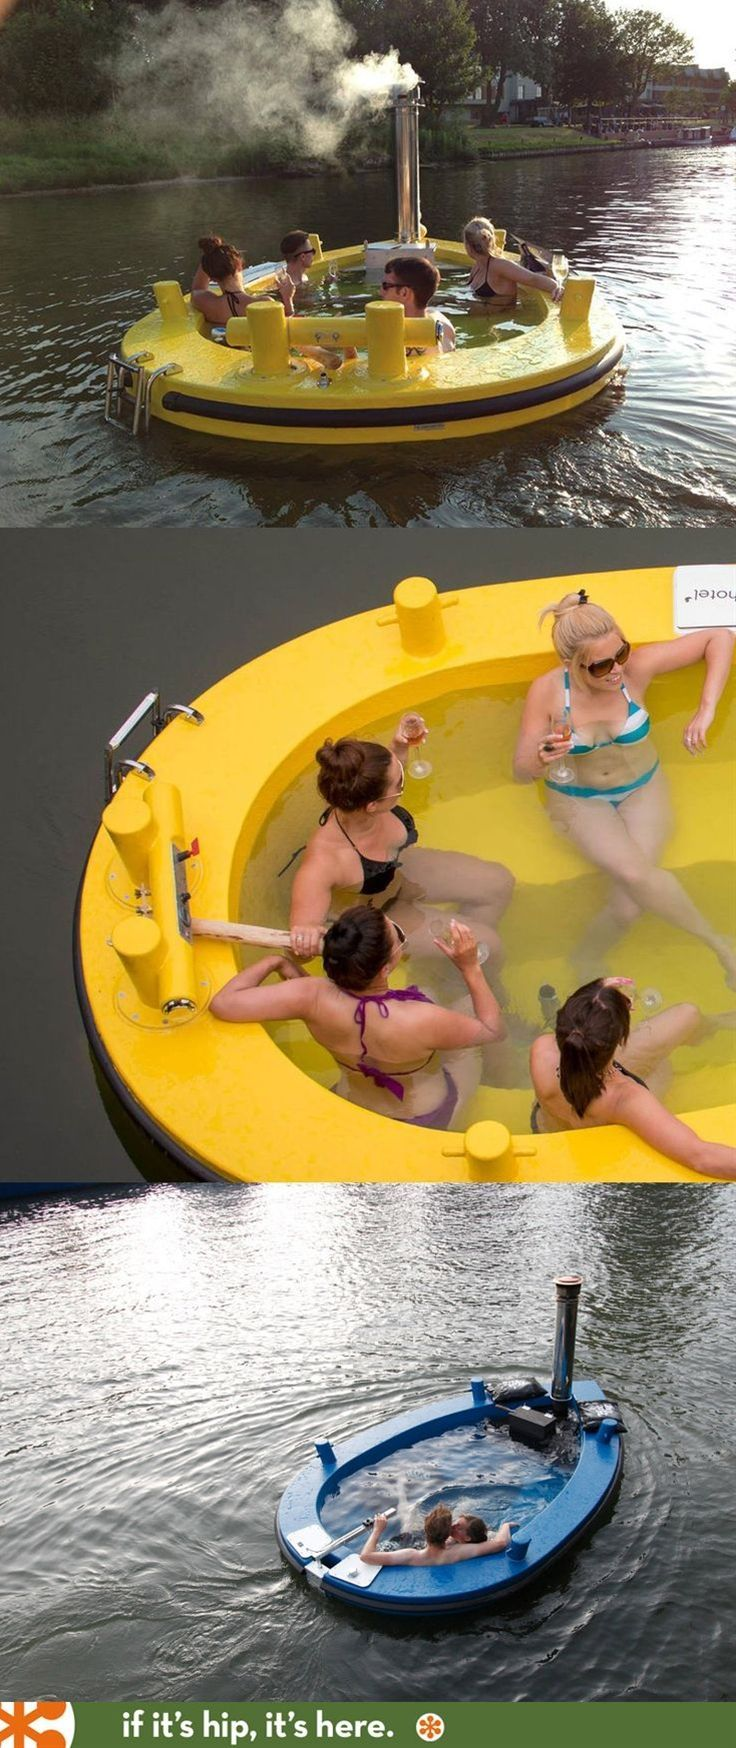 The HotTug. A Motorized Floating Wood-Fired Hot Tub! This can't be good for the lake. But what about putting this in a pool!?